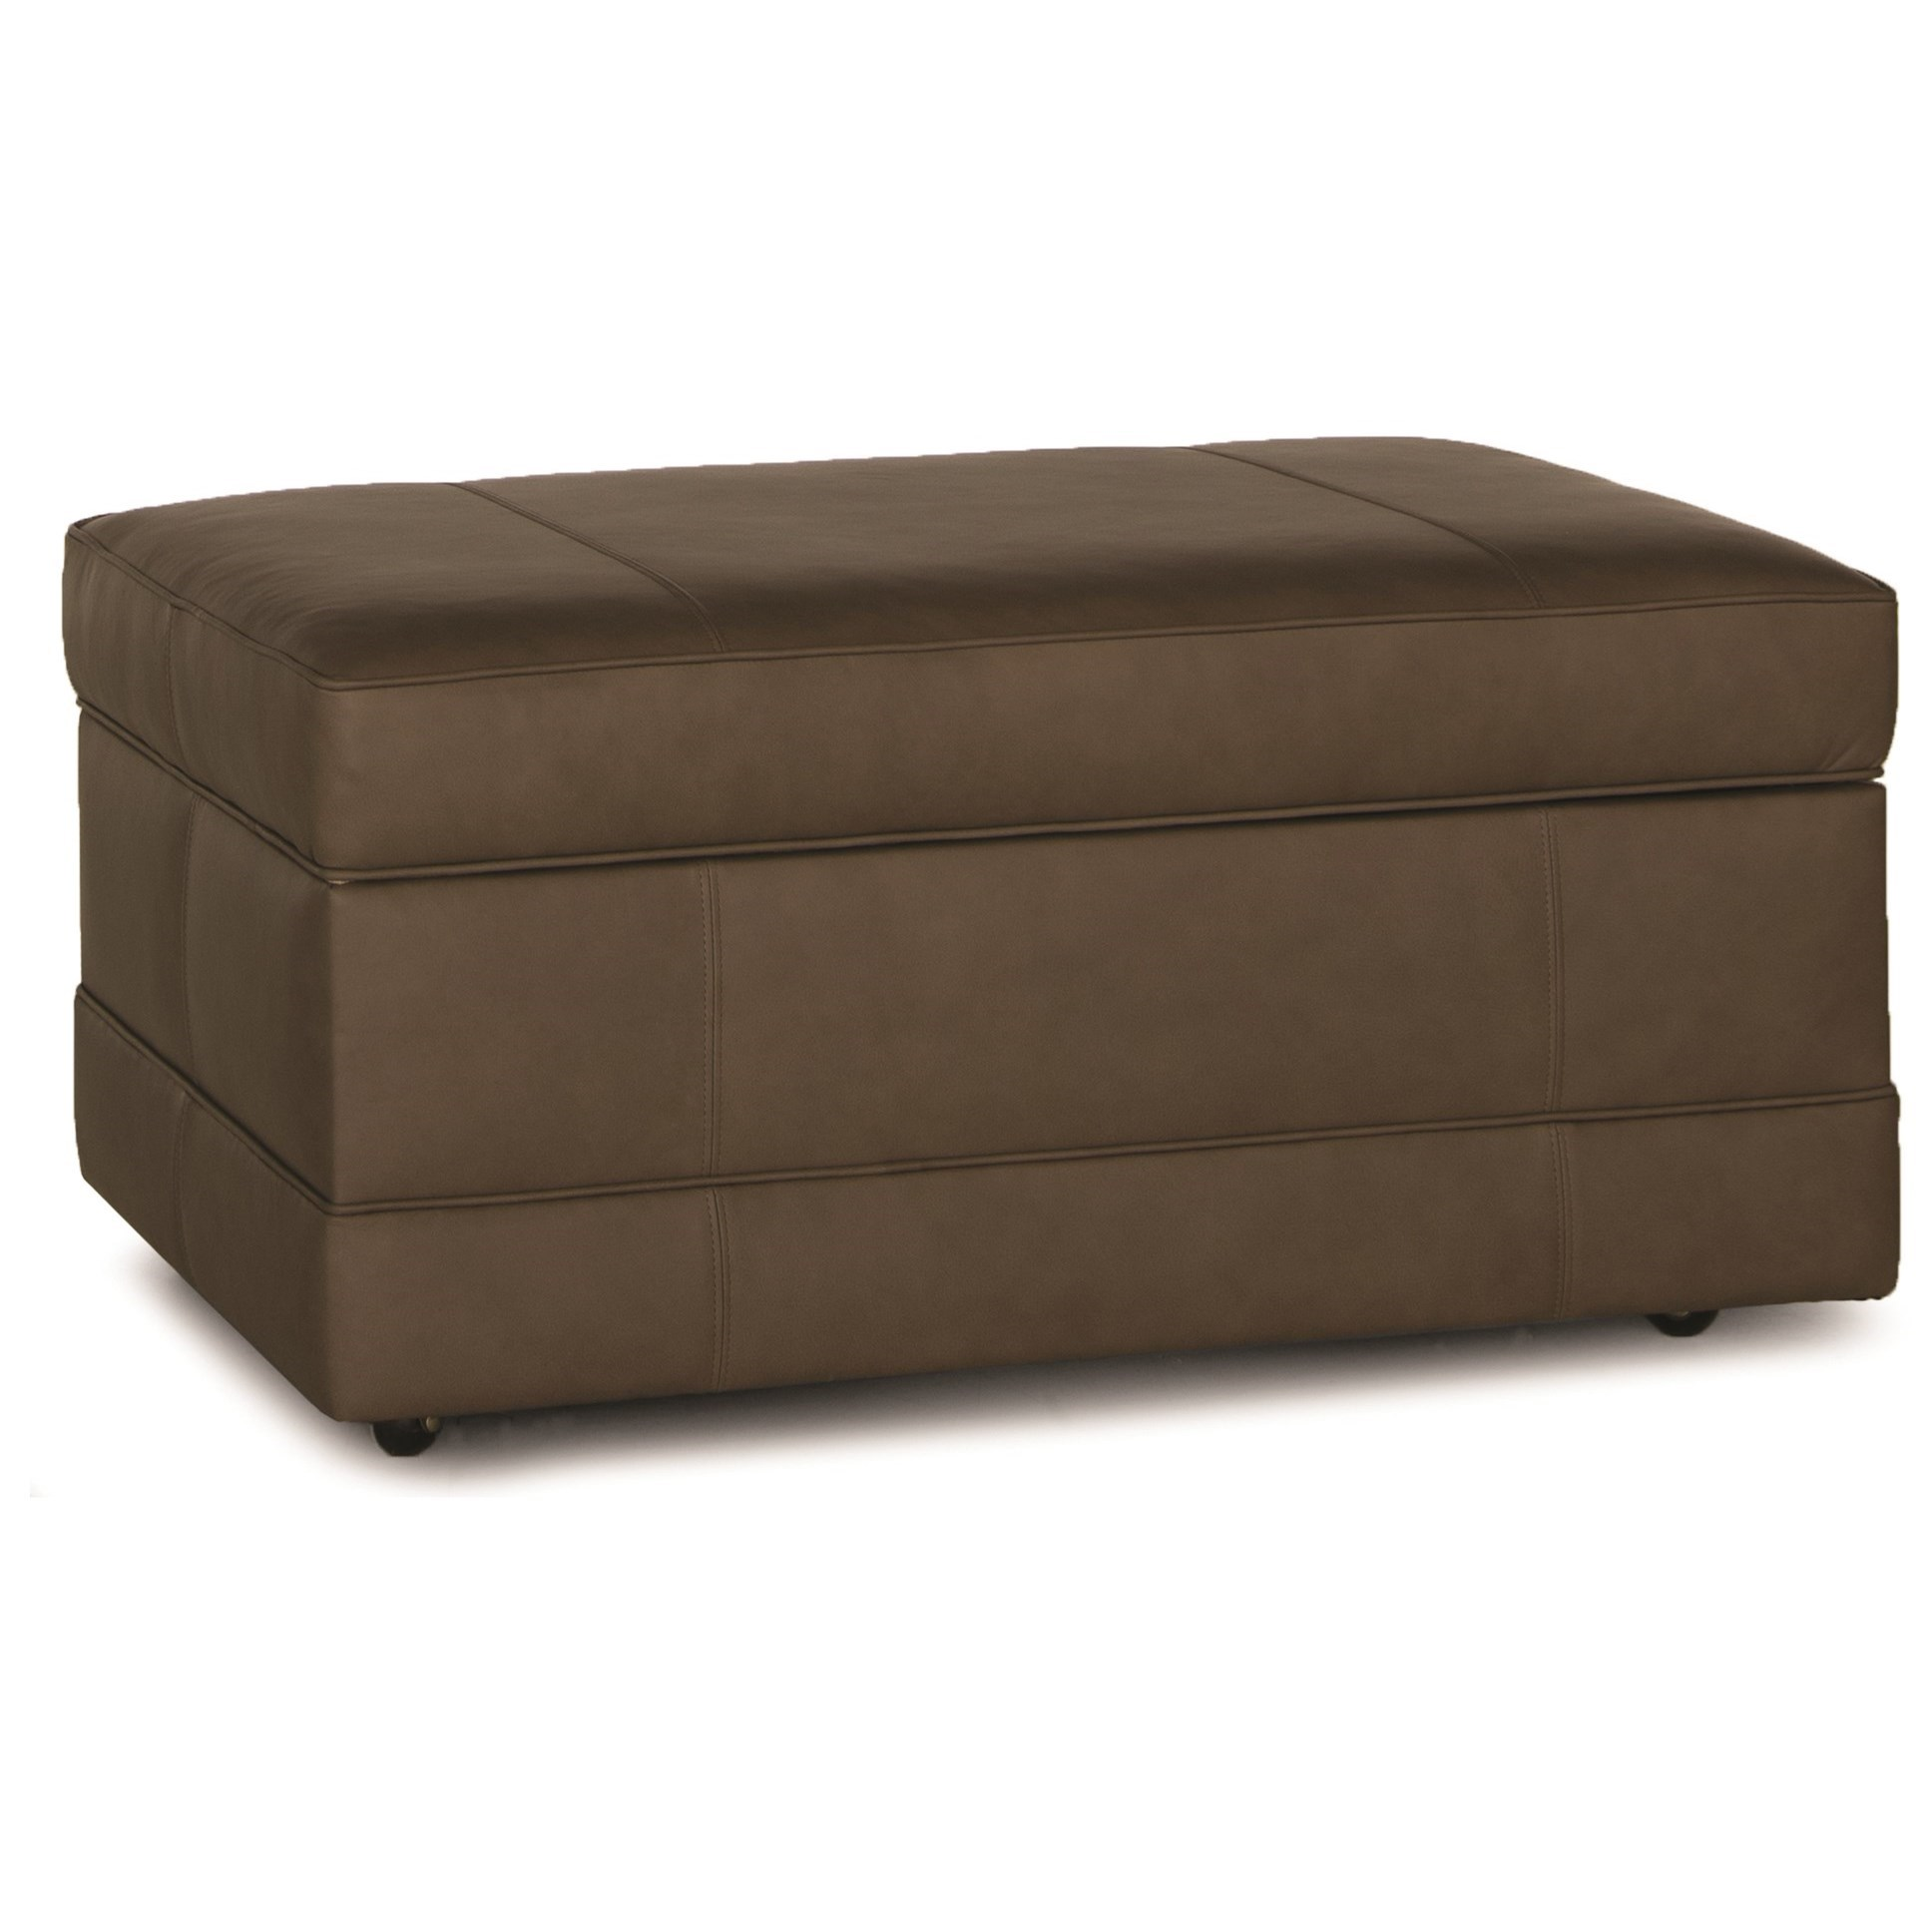 900 Storage Ottoman by Smith Brothers at Pilgrim Furniture City